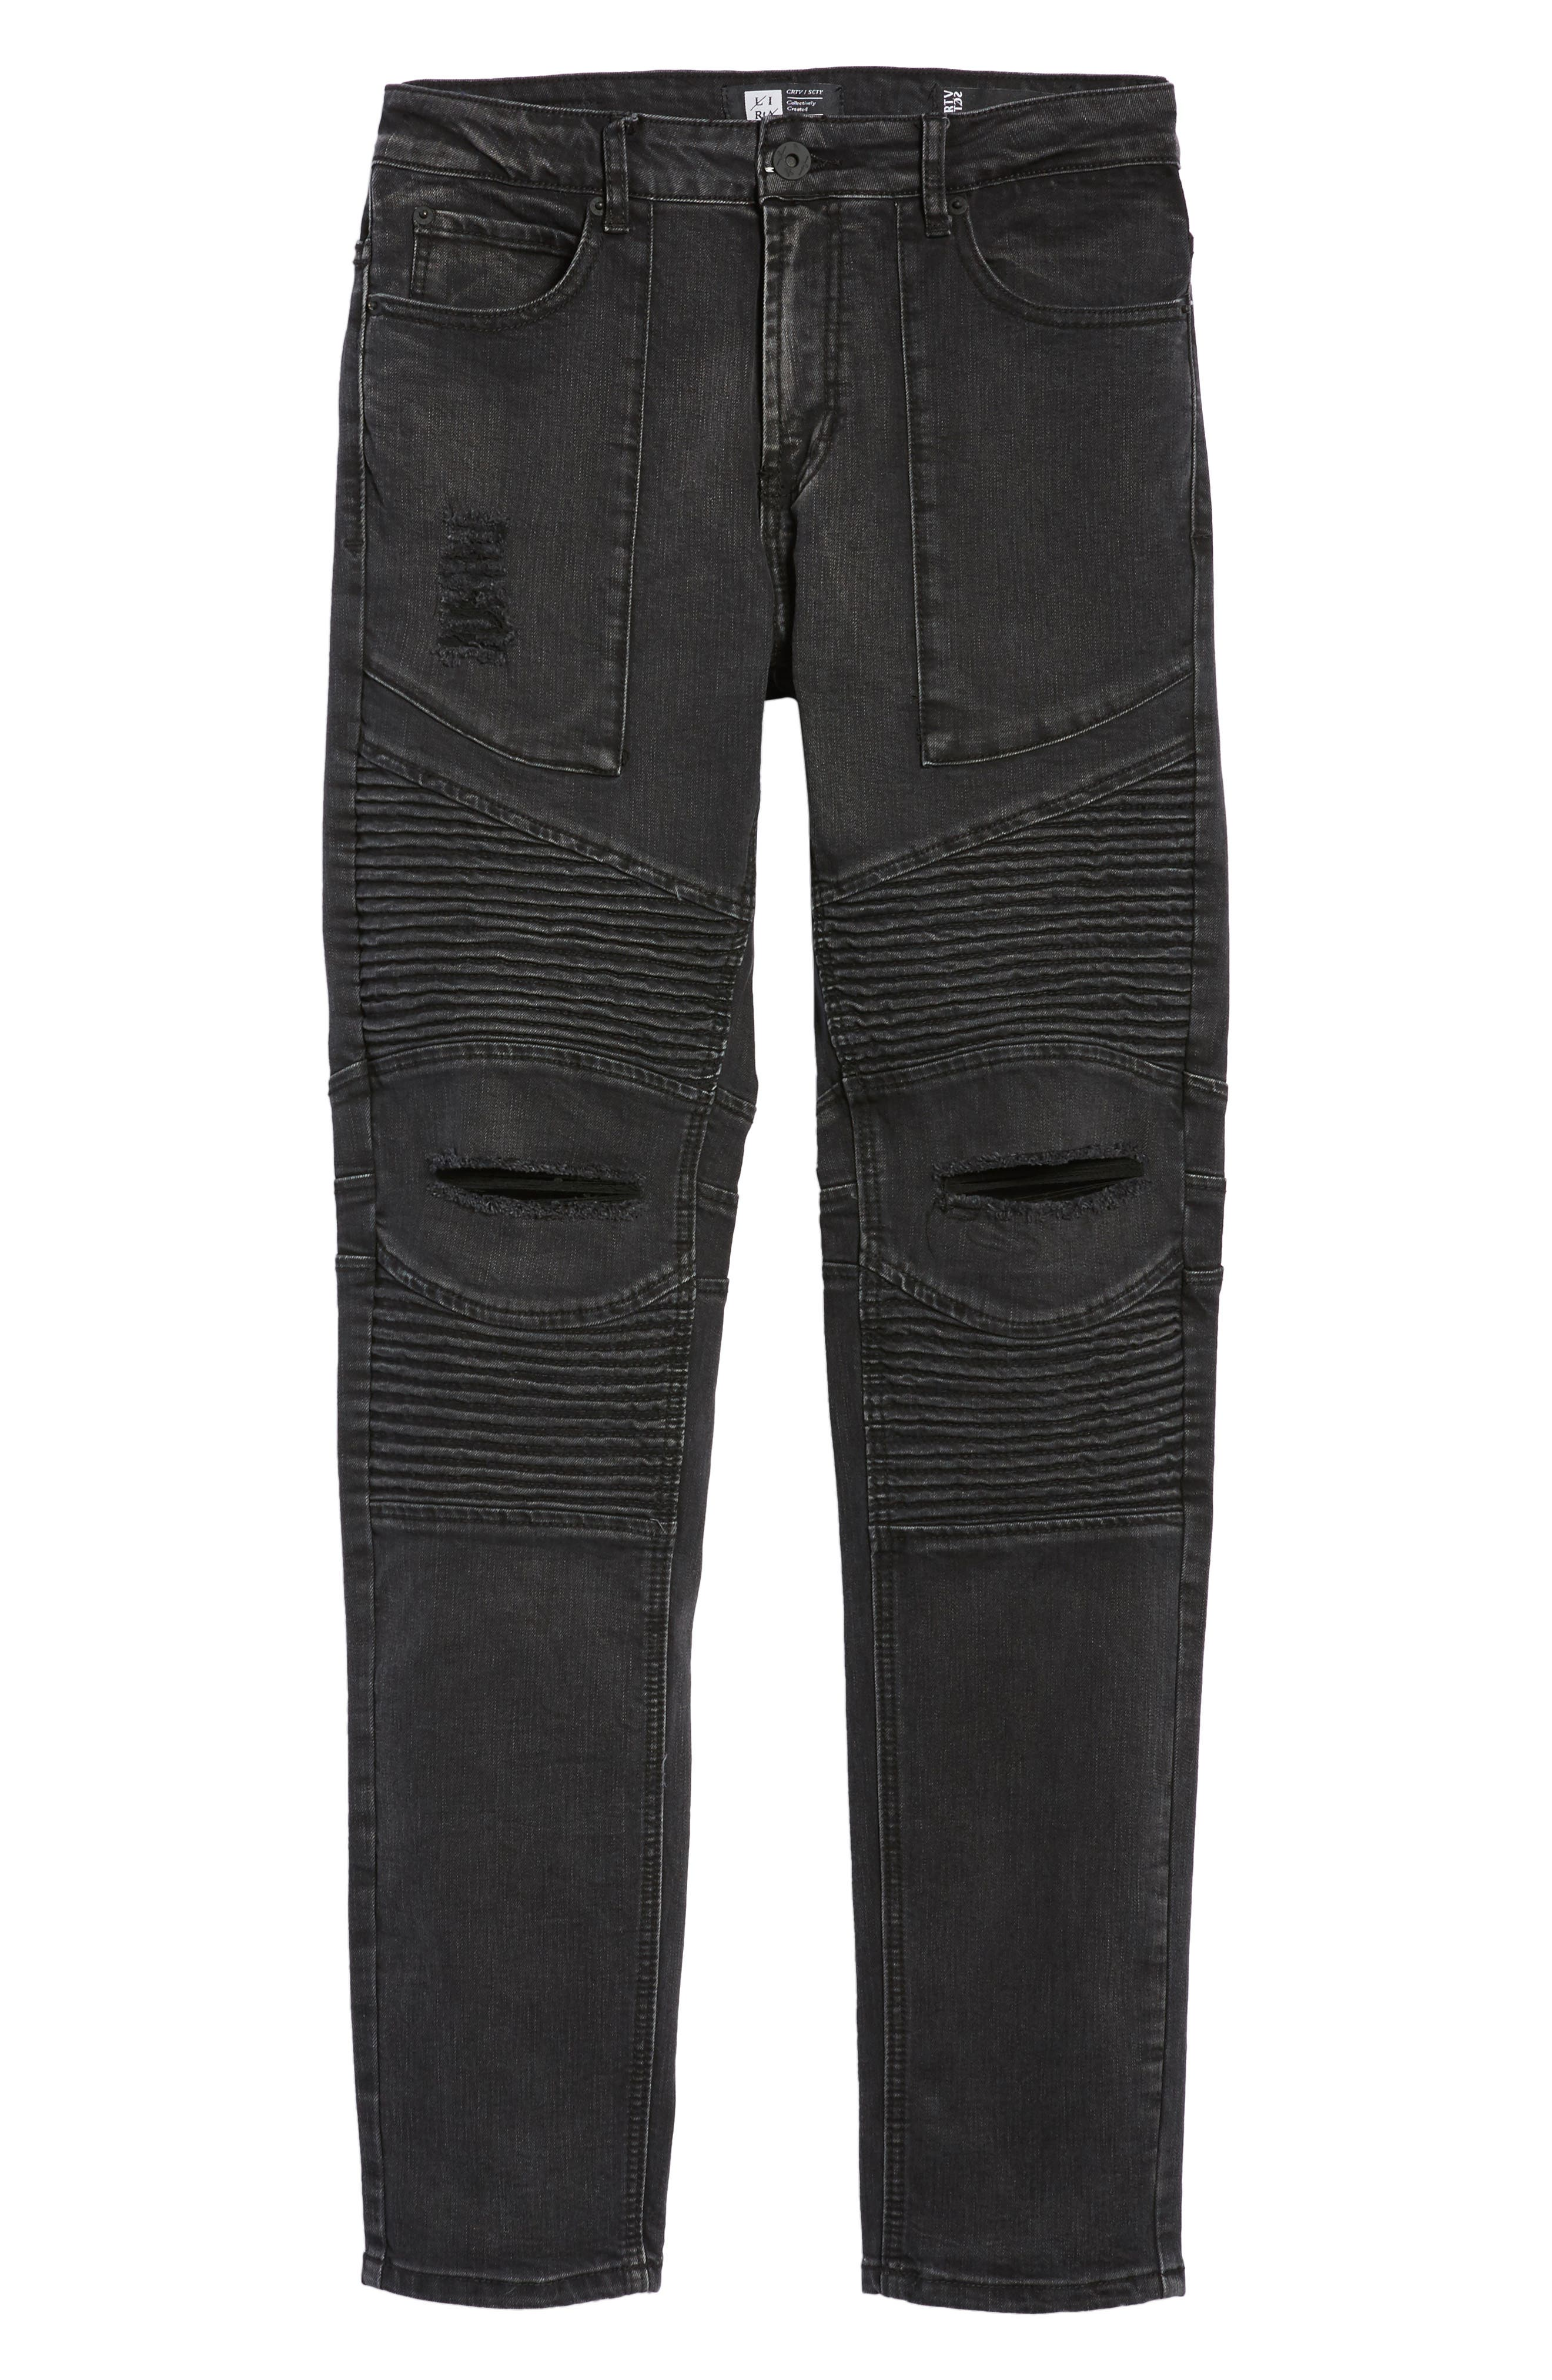 Baxter Ripped Jeans,                             Alternate thumbnail 6, color,                             Faded Black